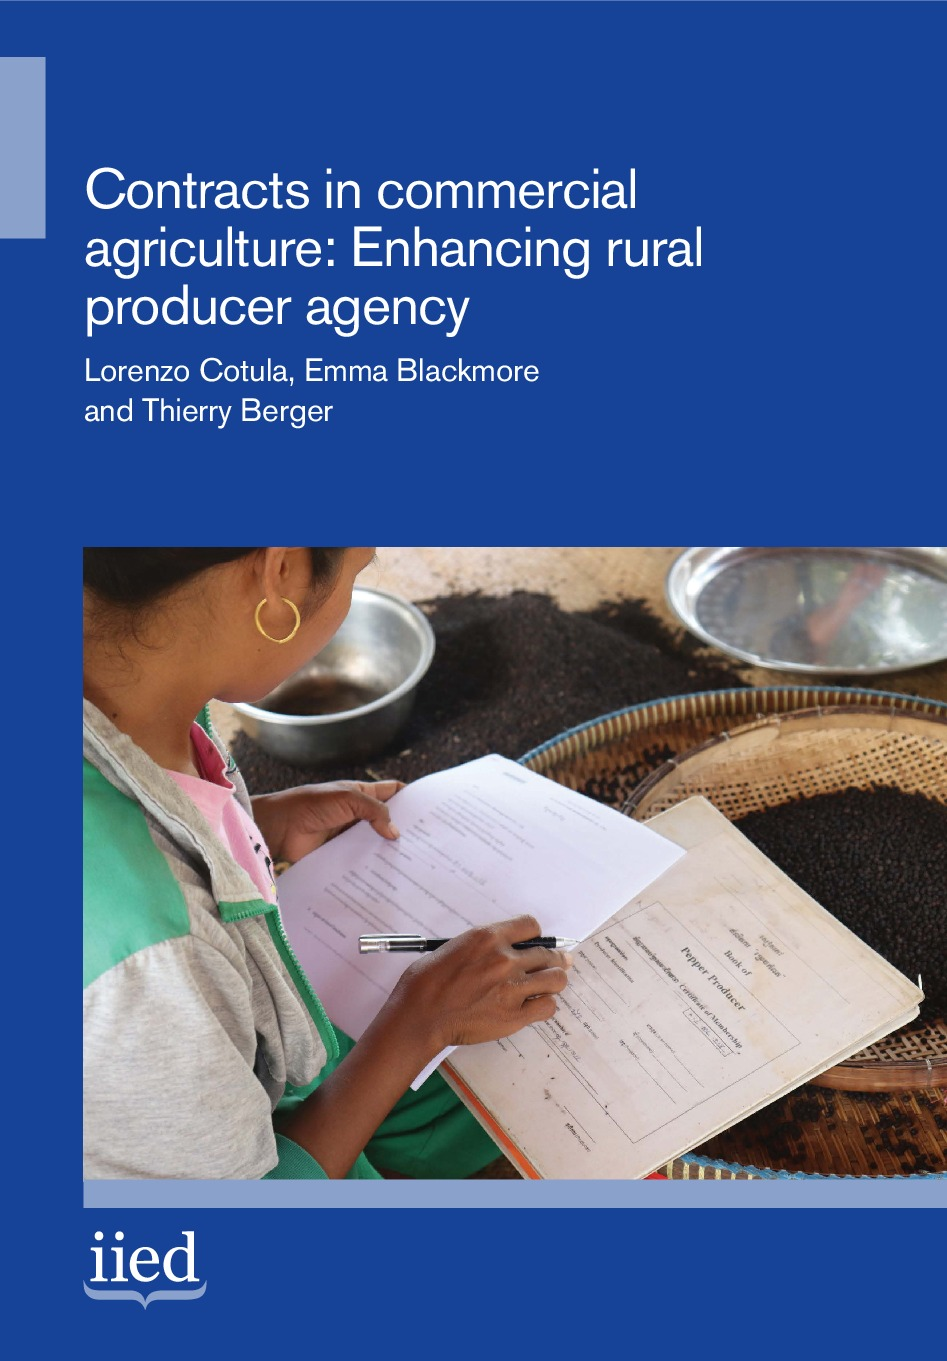 Contracts in commercial agriculture: enhancing rural producer agency